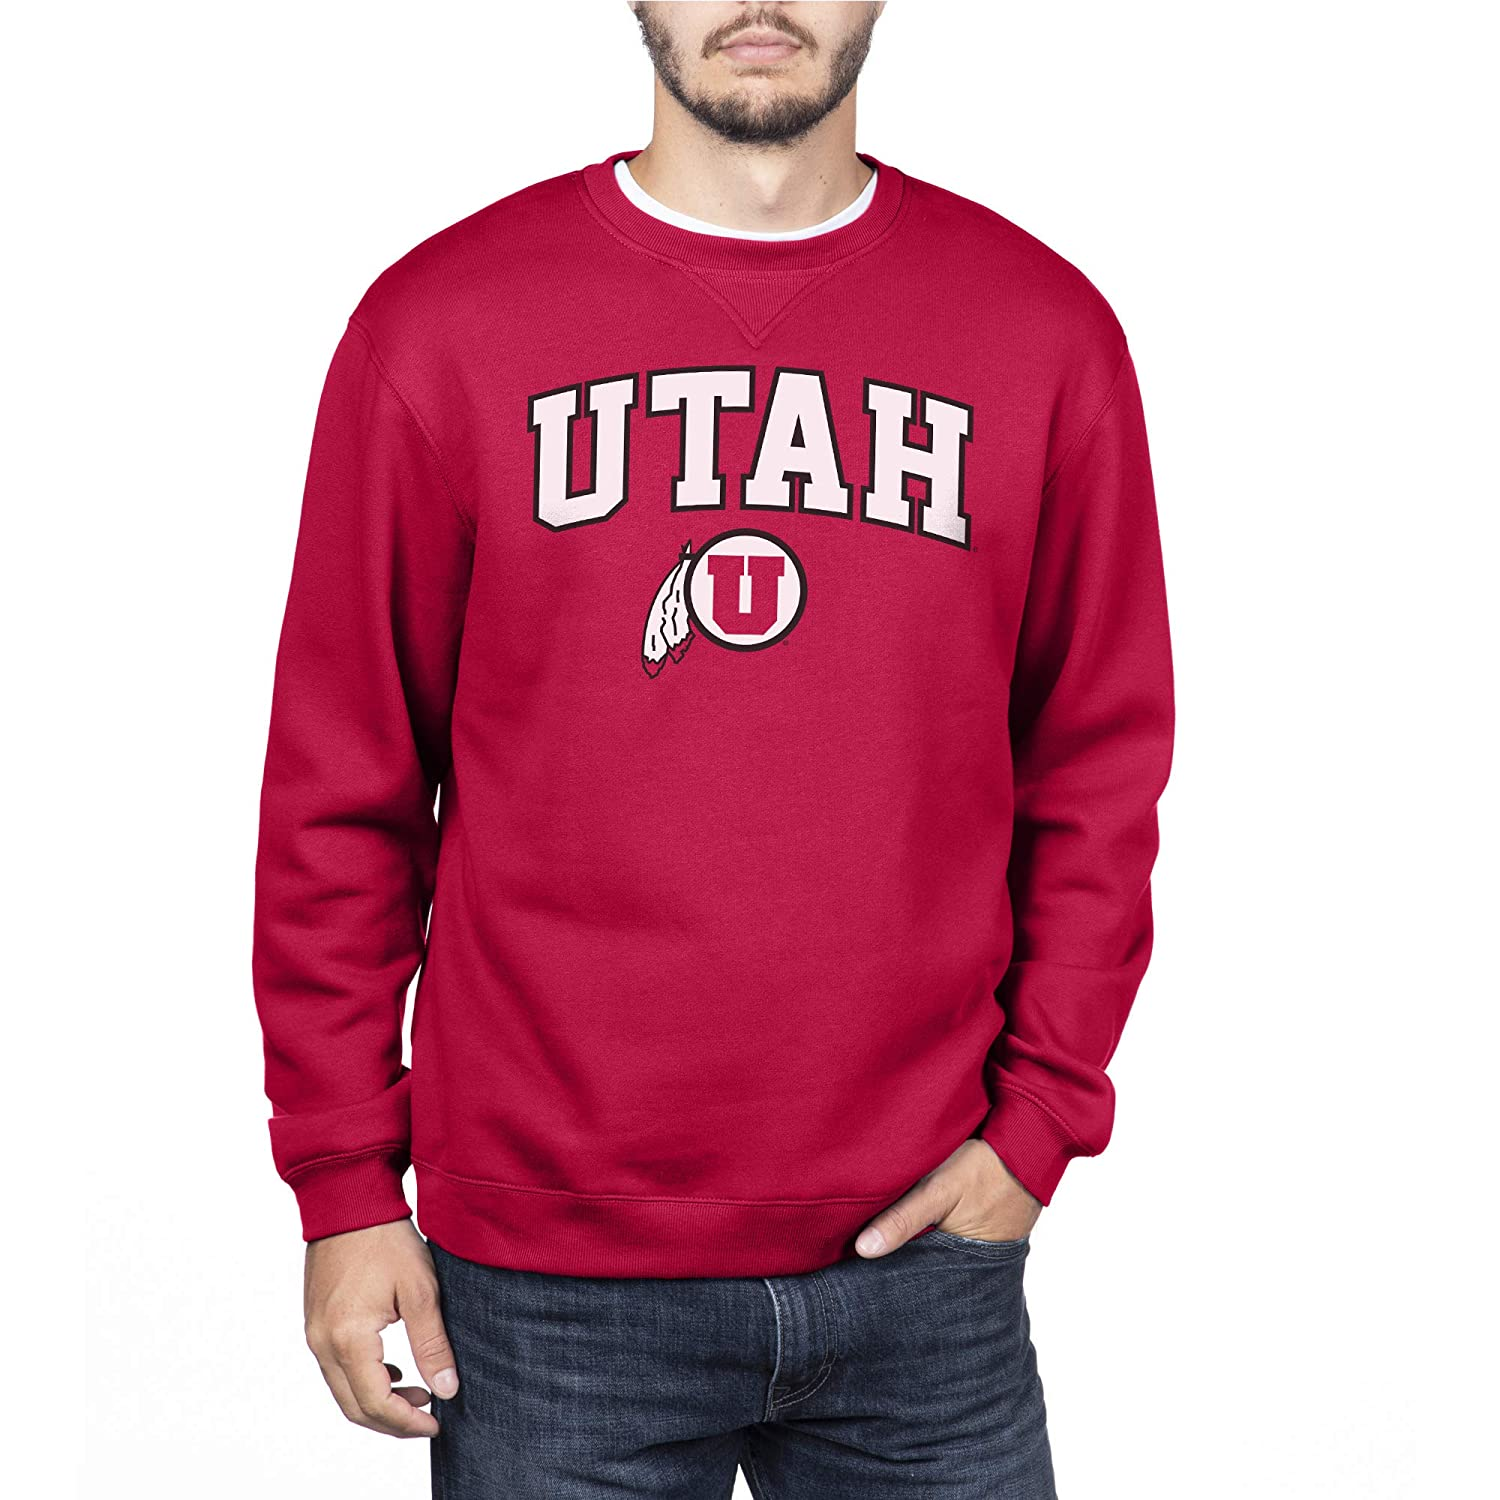 Medium NCAA Utah Utes Mens Team Color Crewneck Sweatshirt Red